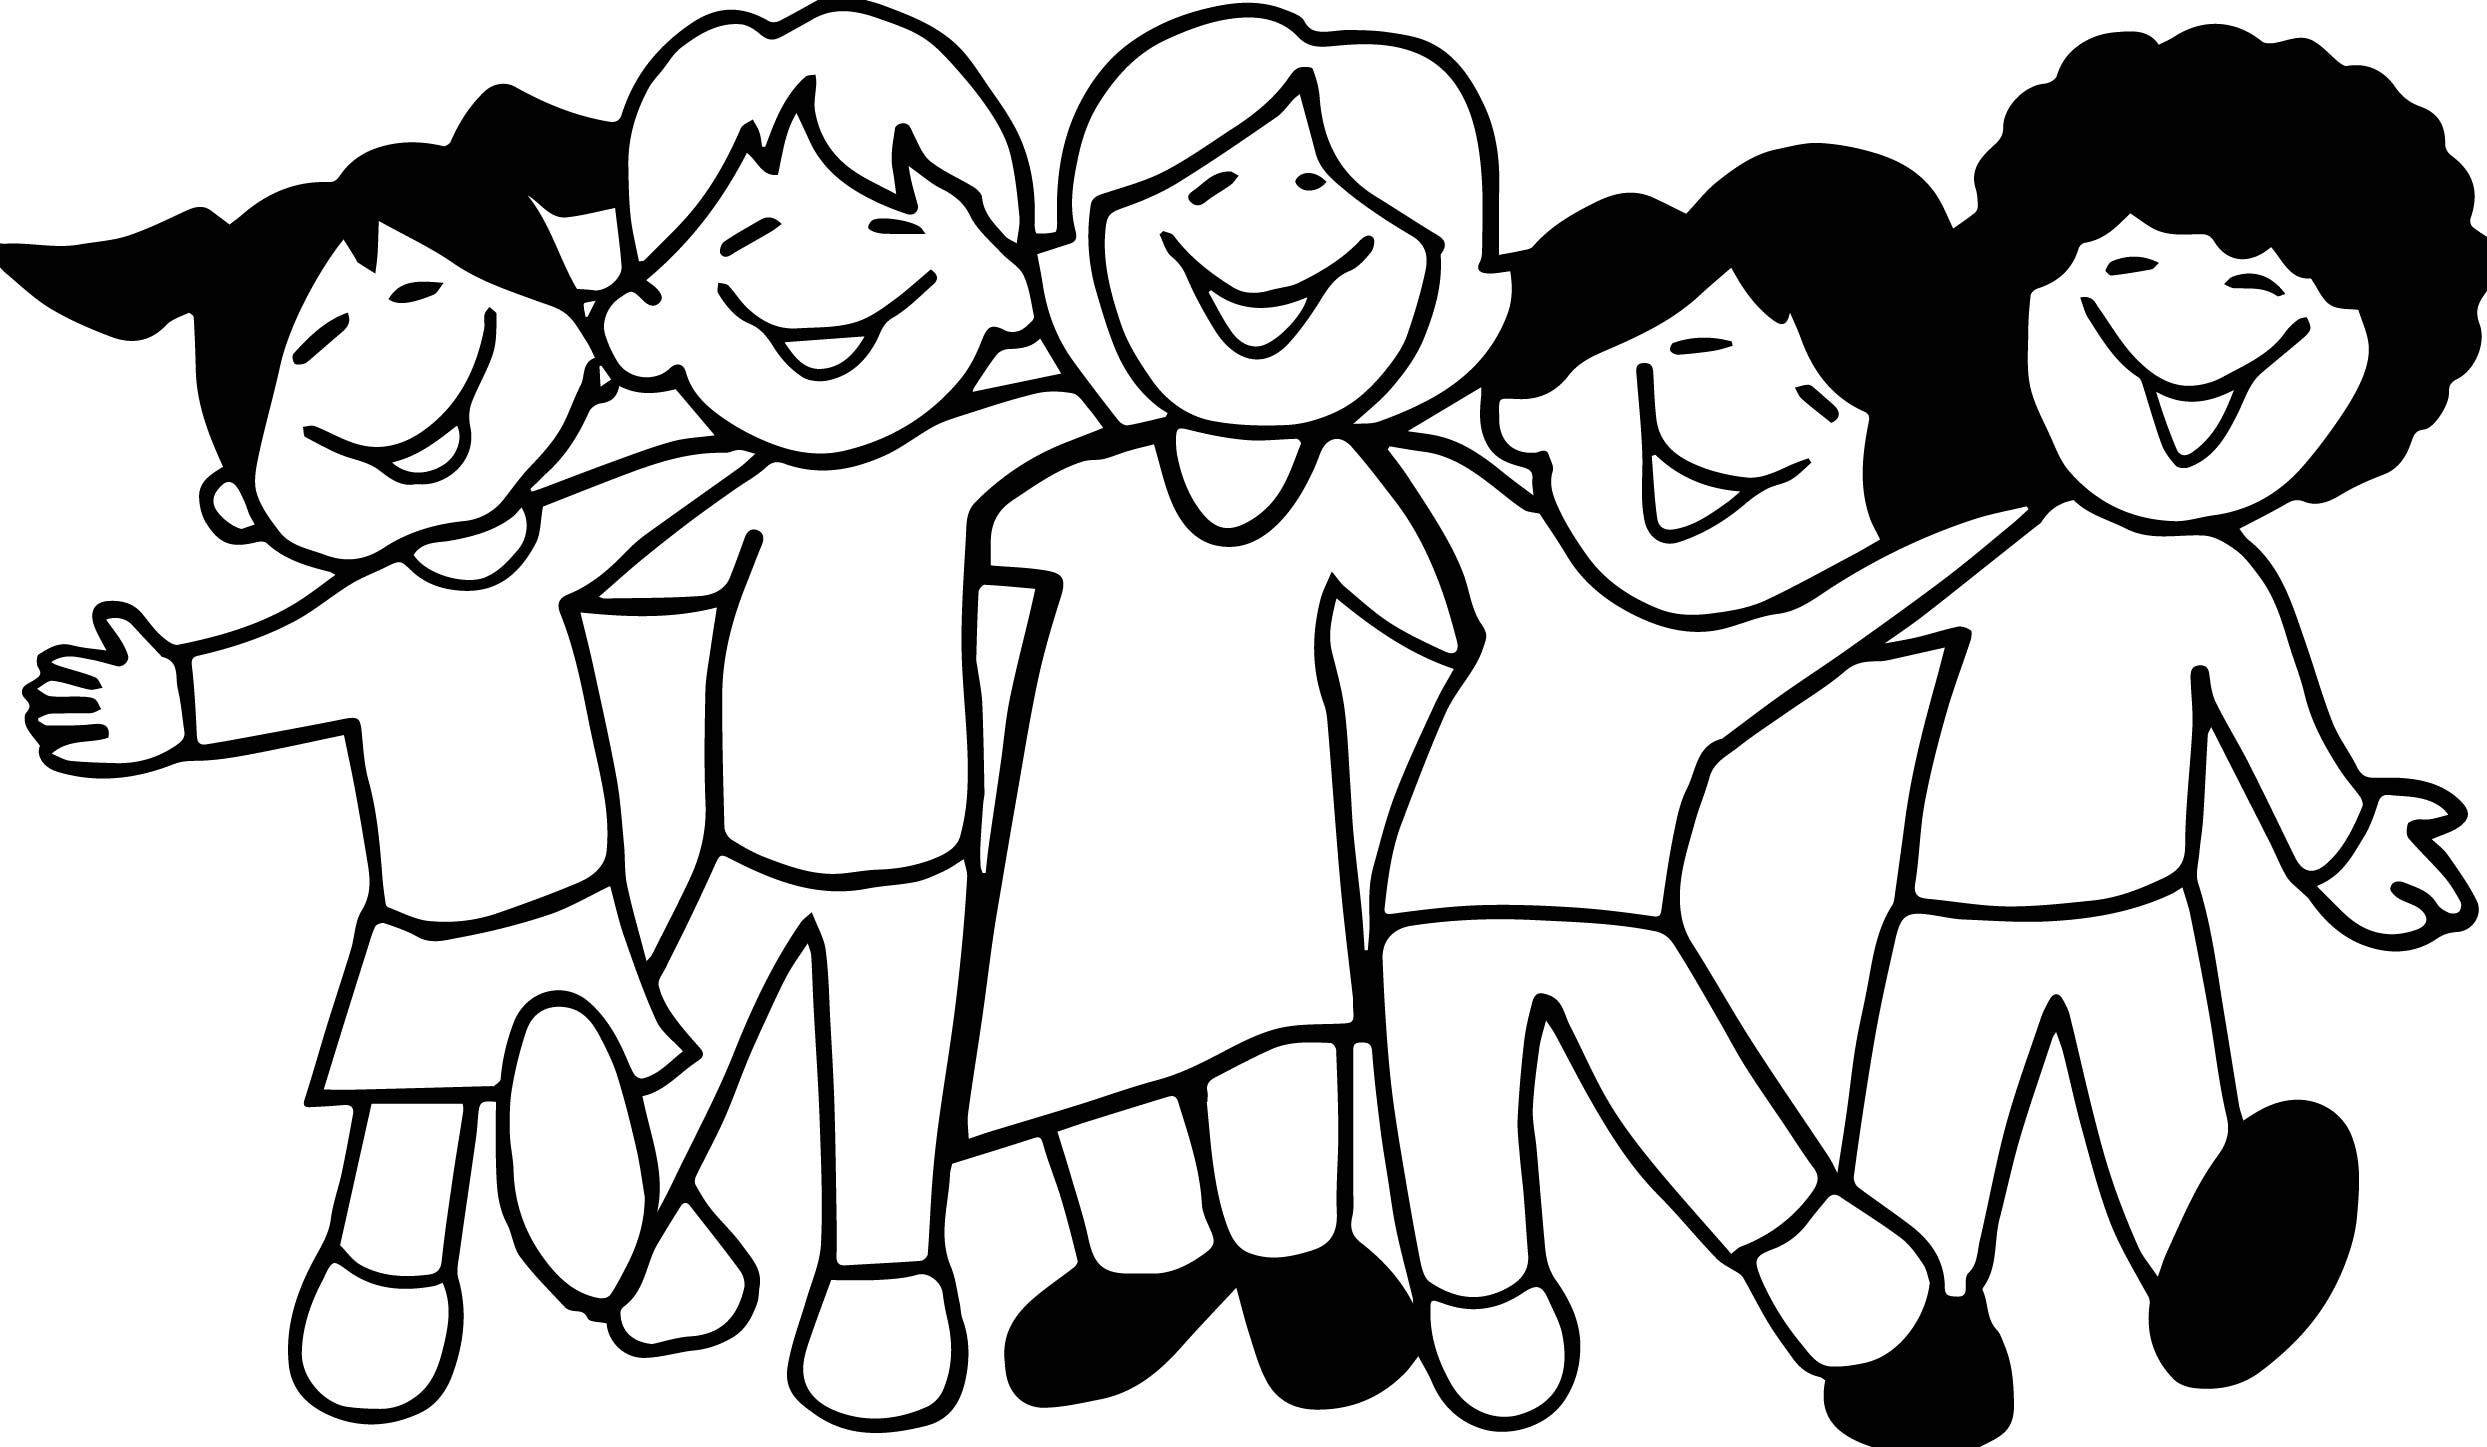 Cool Five Kids Friendship Coloring Page